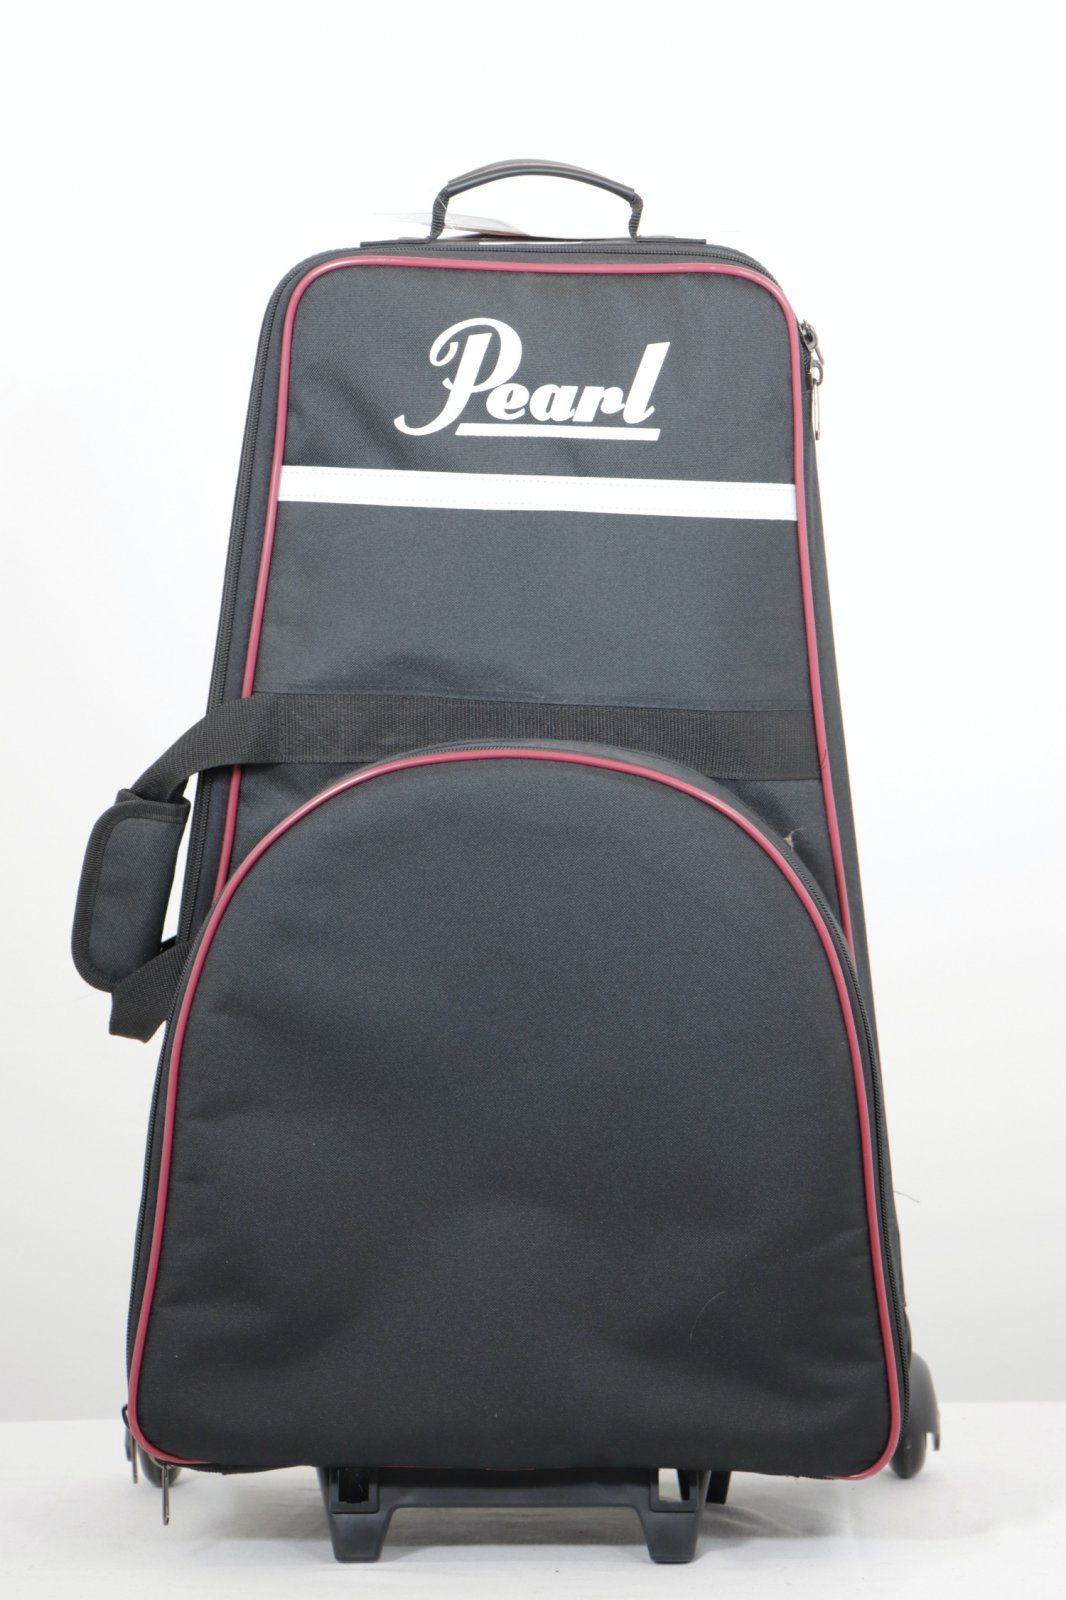 USED Pearl PL900C Percussion Learning Center / Bell Kit with Snare Drum, Practice Pad and Stand